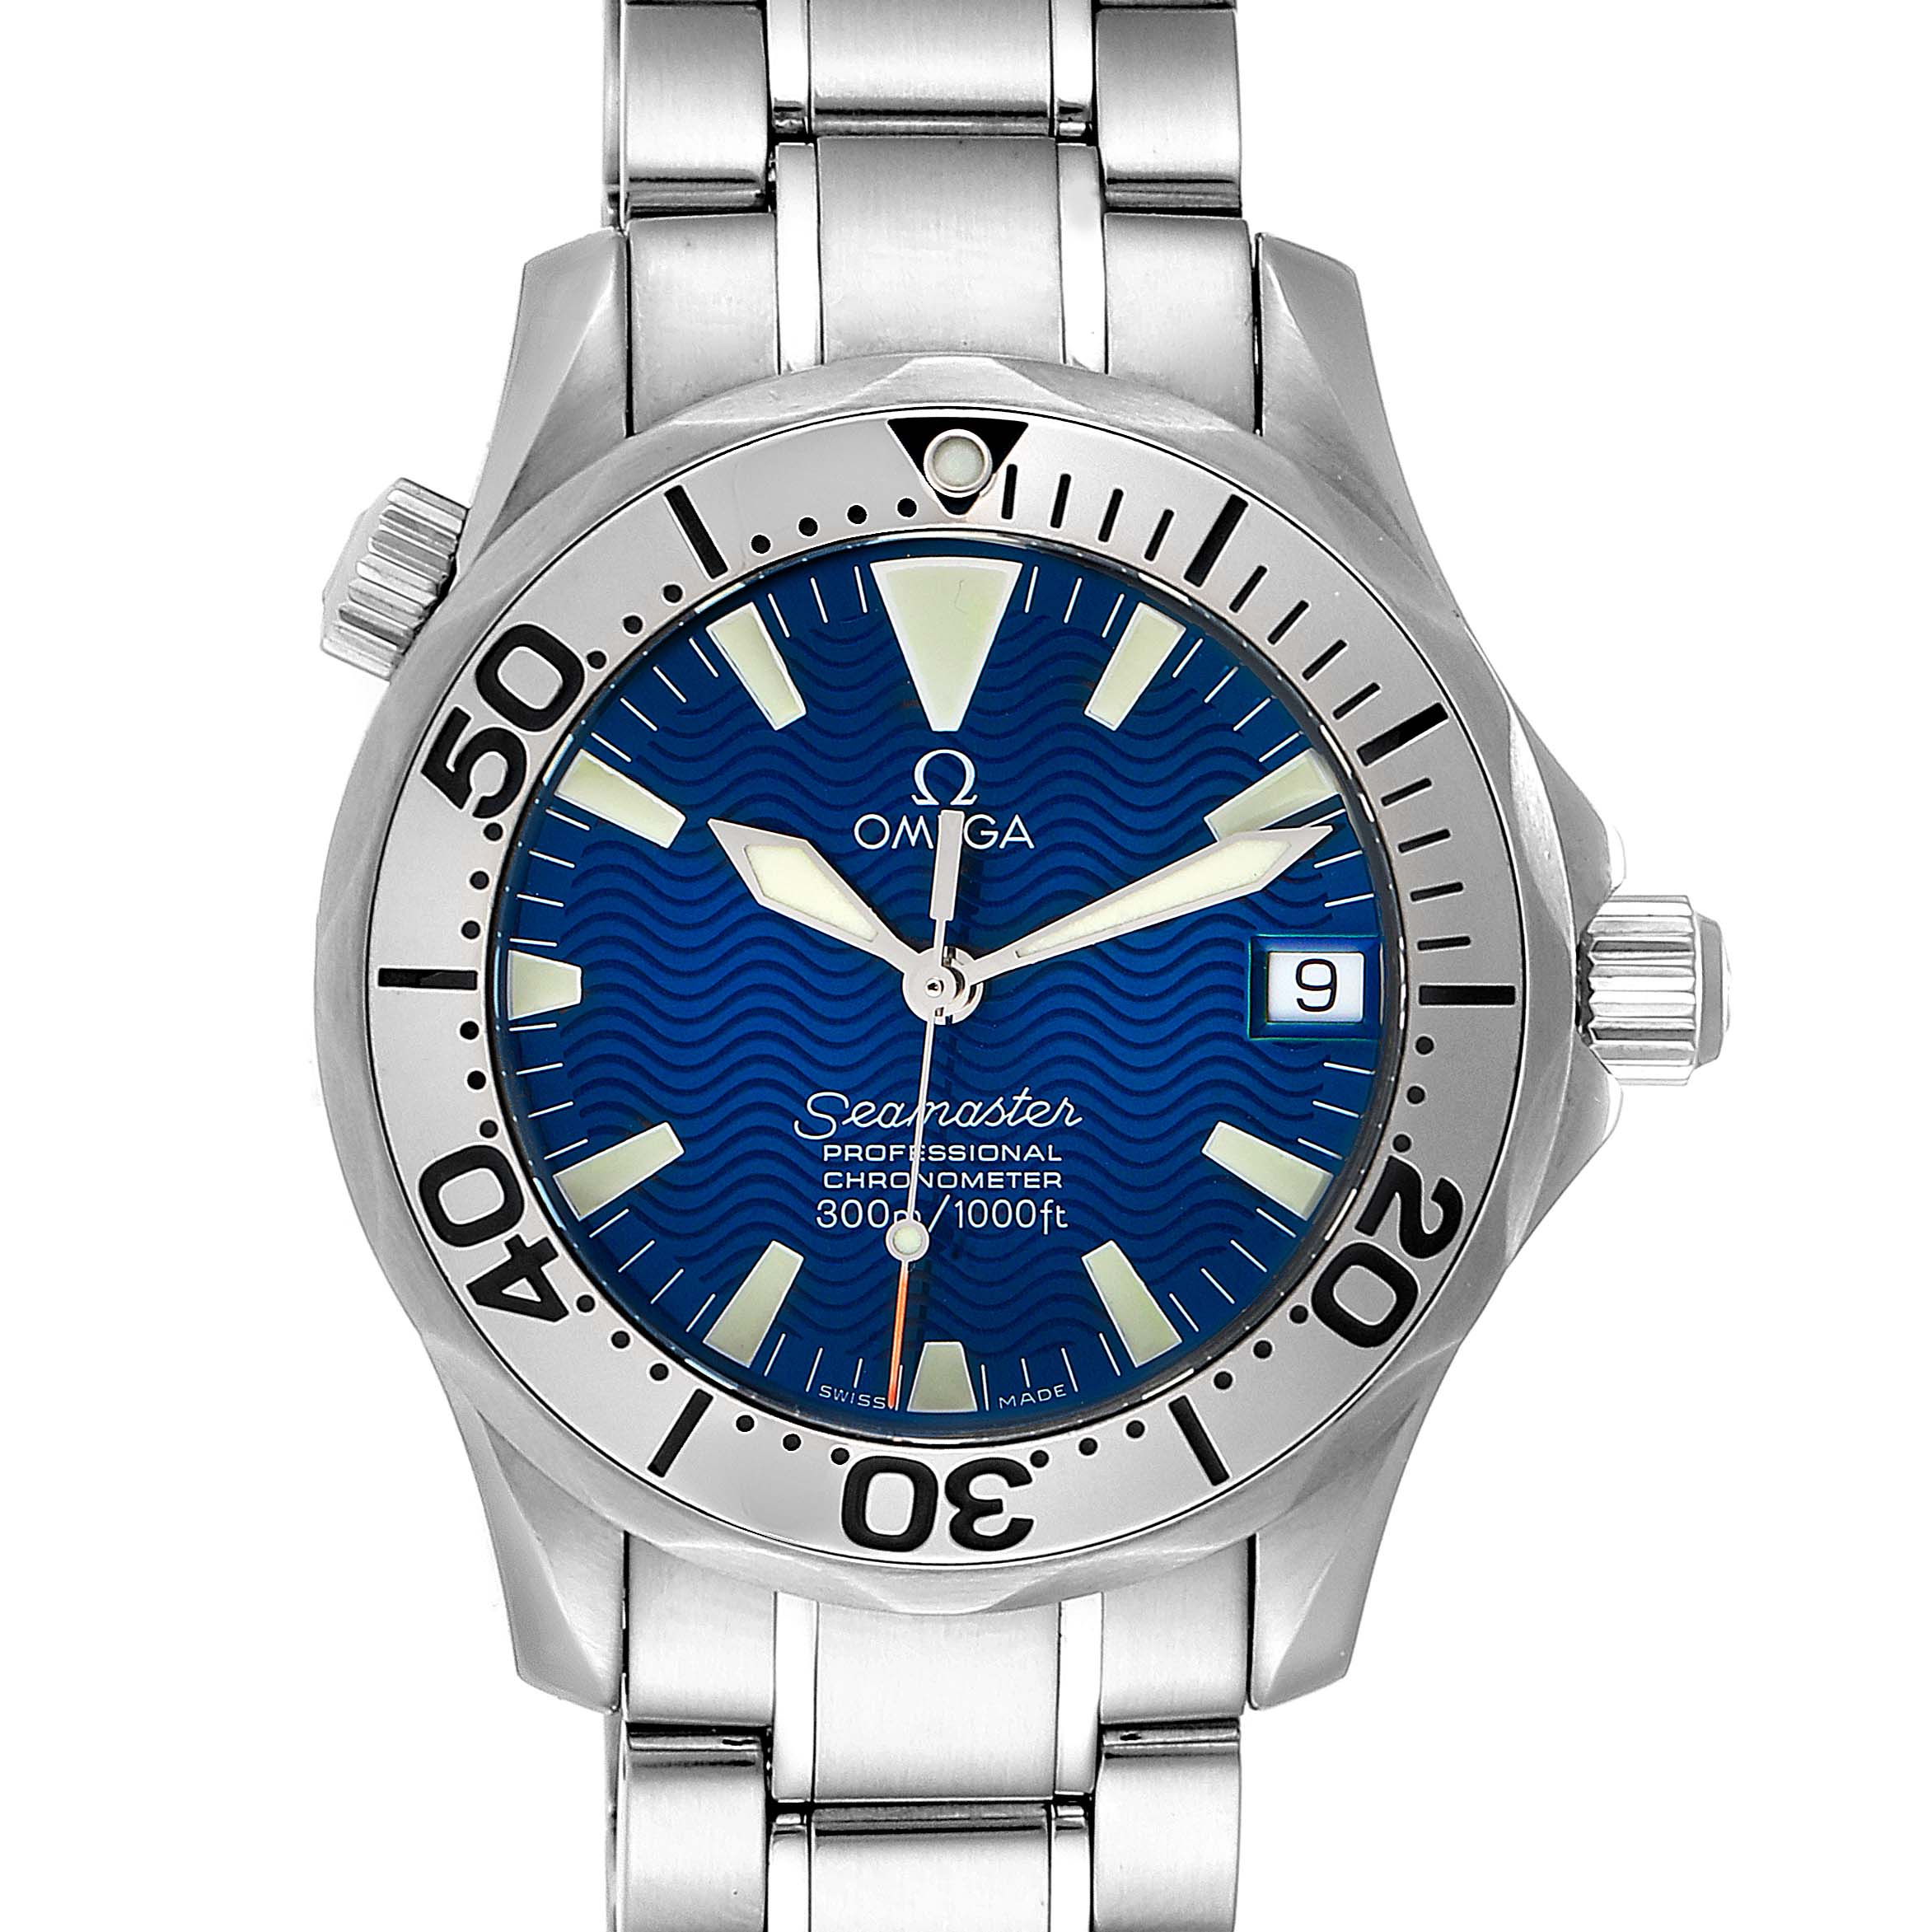 Omega Seamaster Midsize Steel Electric Blue Dial Watch 2553.80.00